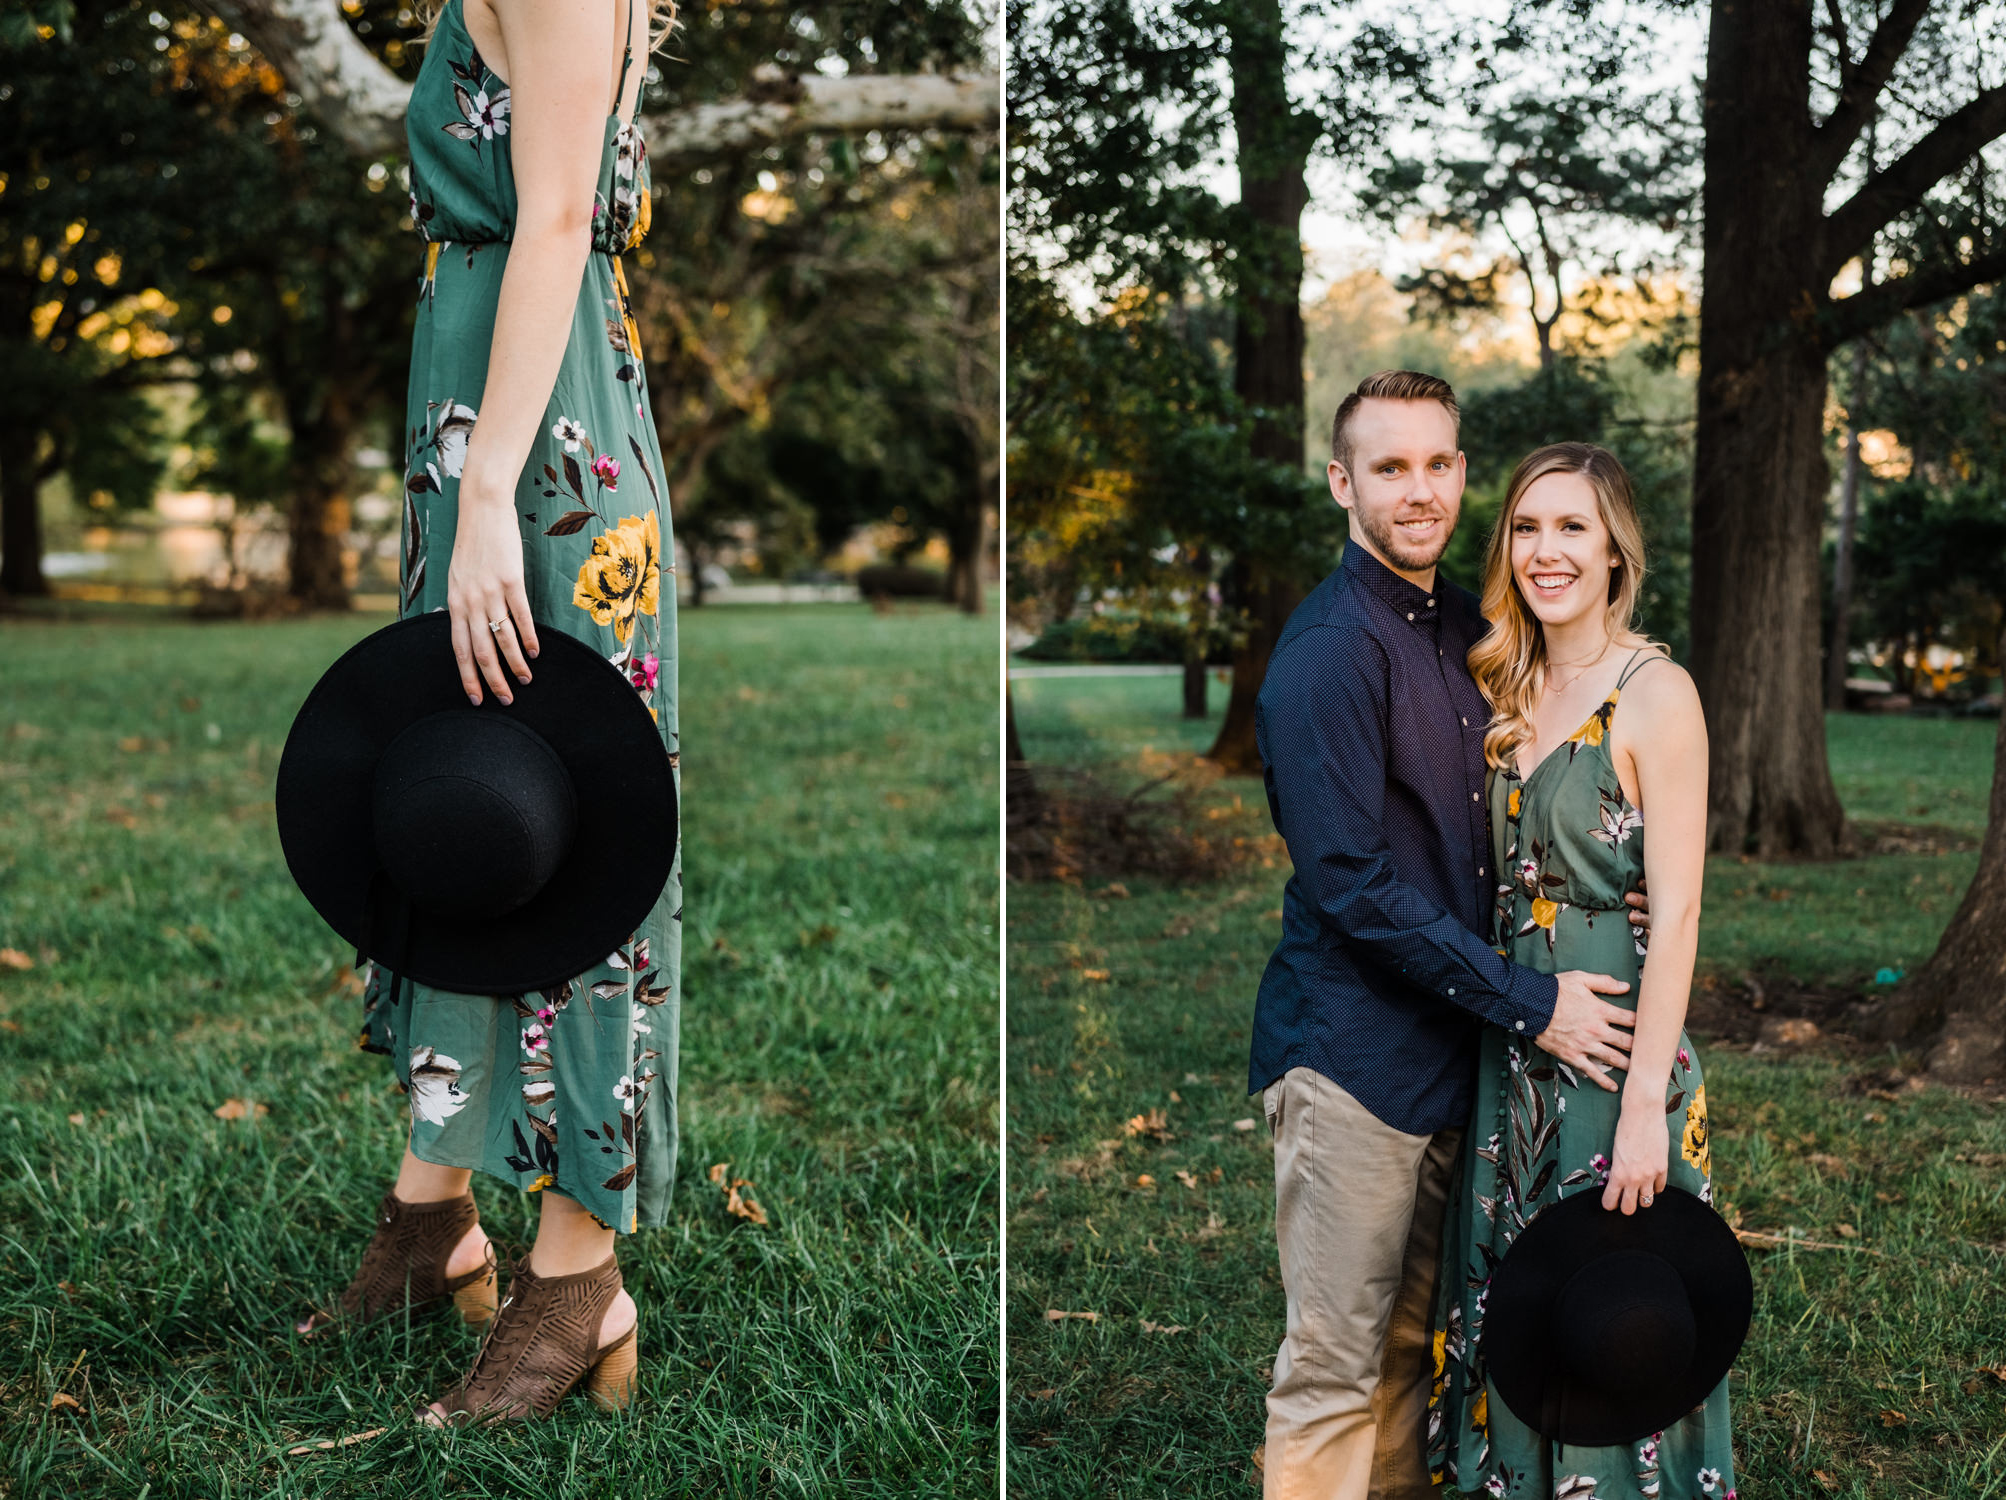 Kansas City Engagement Photographer-Neal Dieker-Kansas City, Kansas-Kansas City, Kansas-Neal Dieker Photography-179.jpg